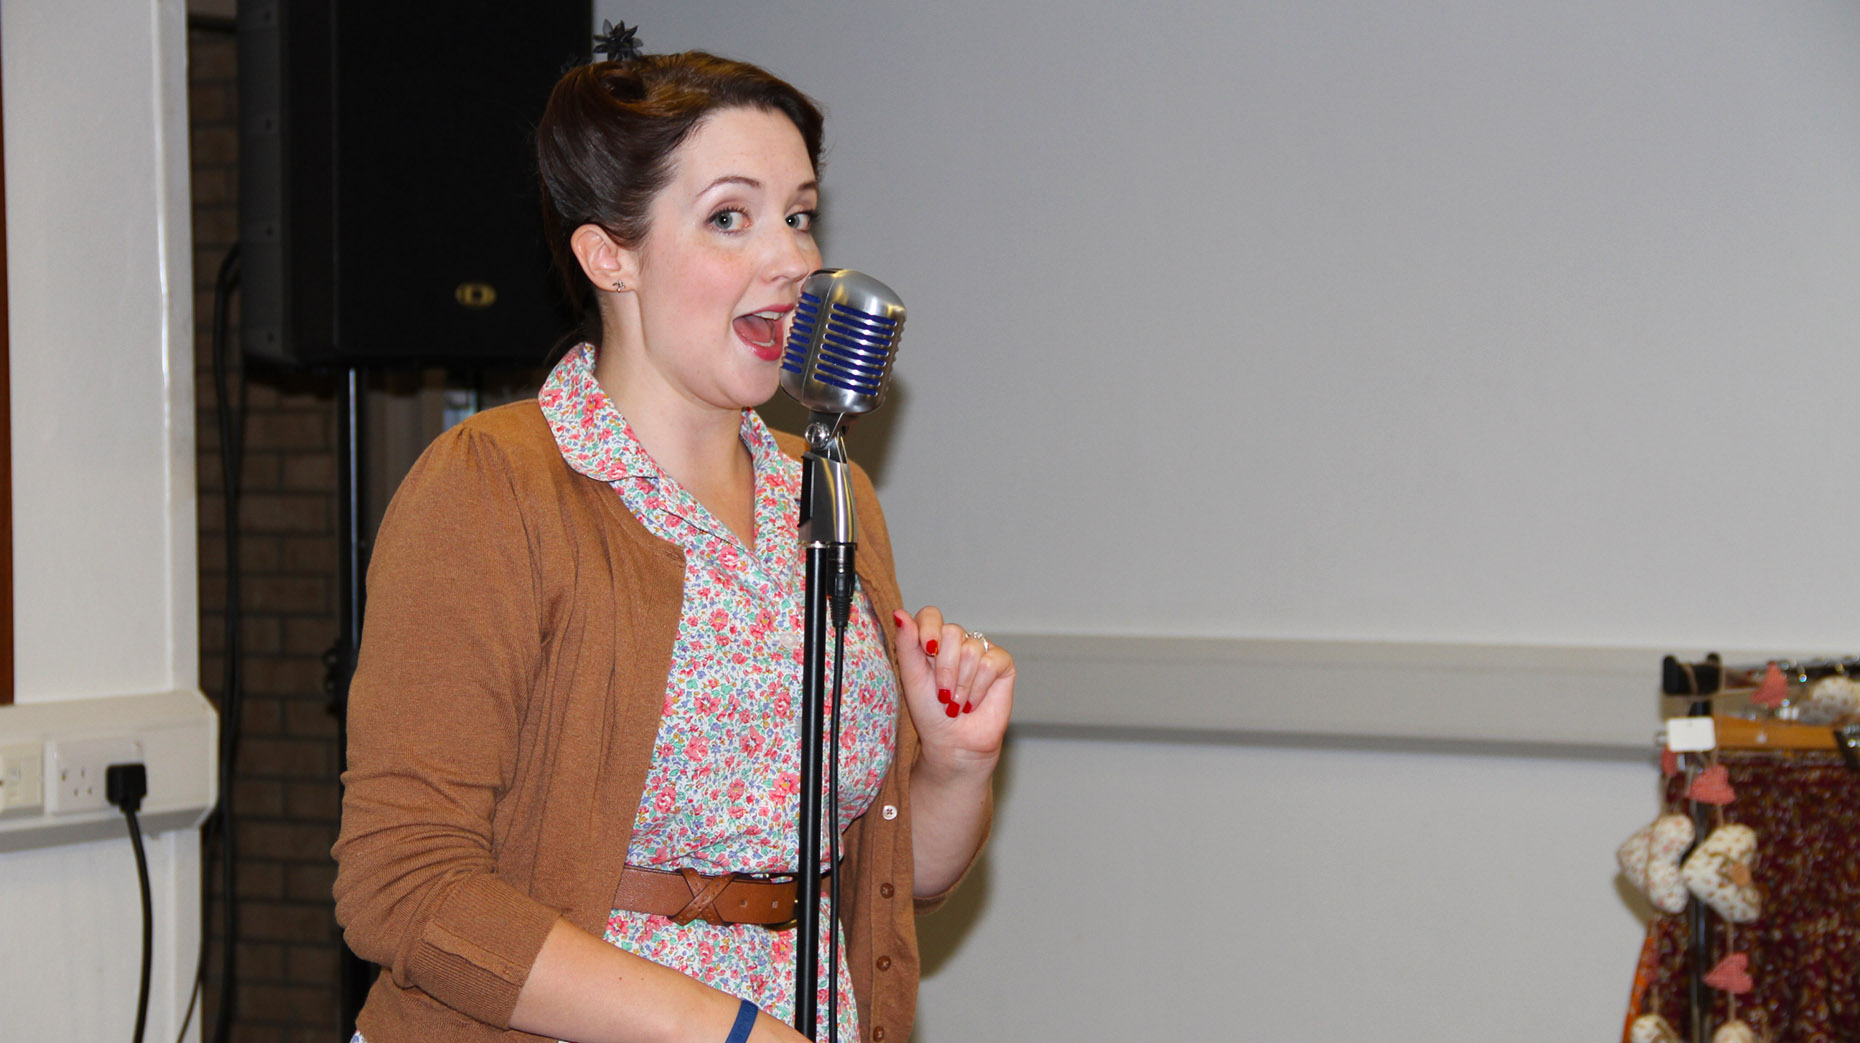 Heather-Maire will be performing at the festival alongside other 1940s-style acts.